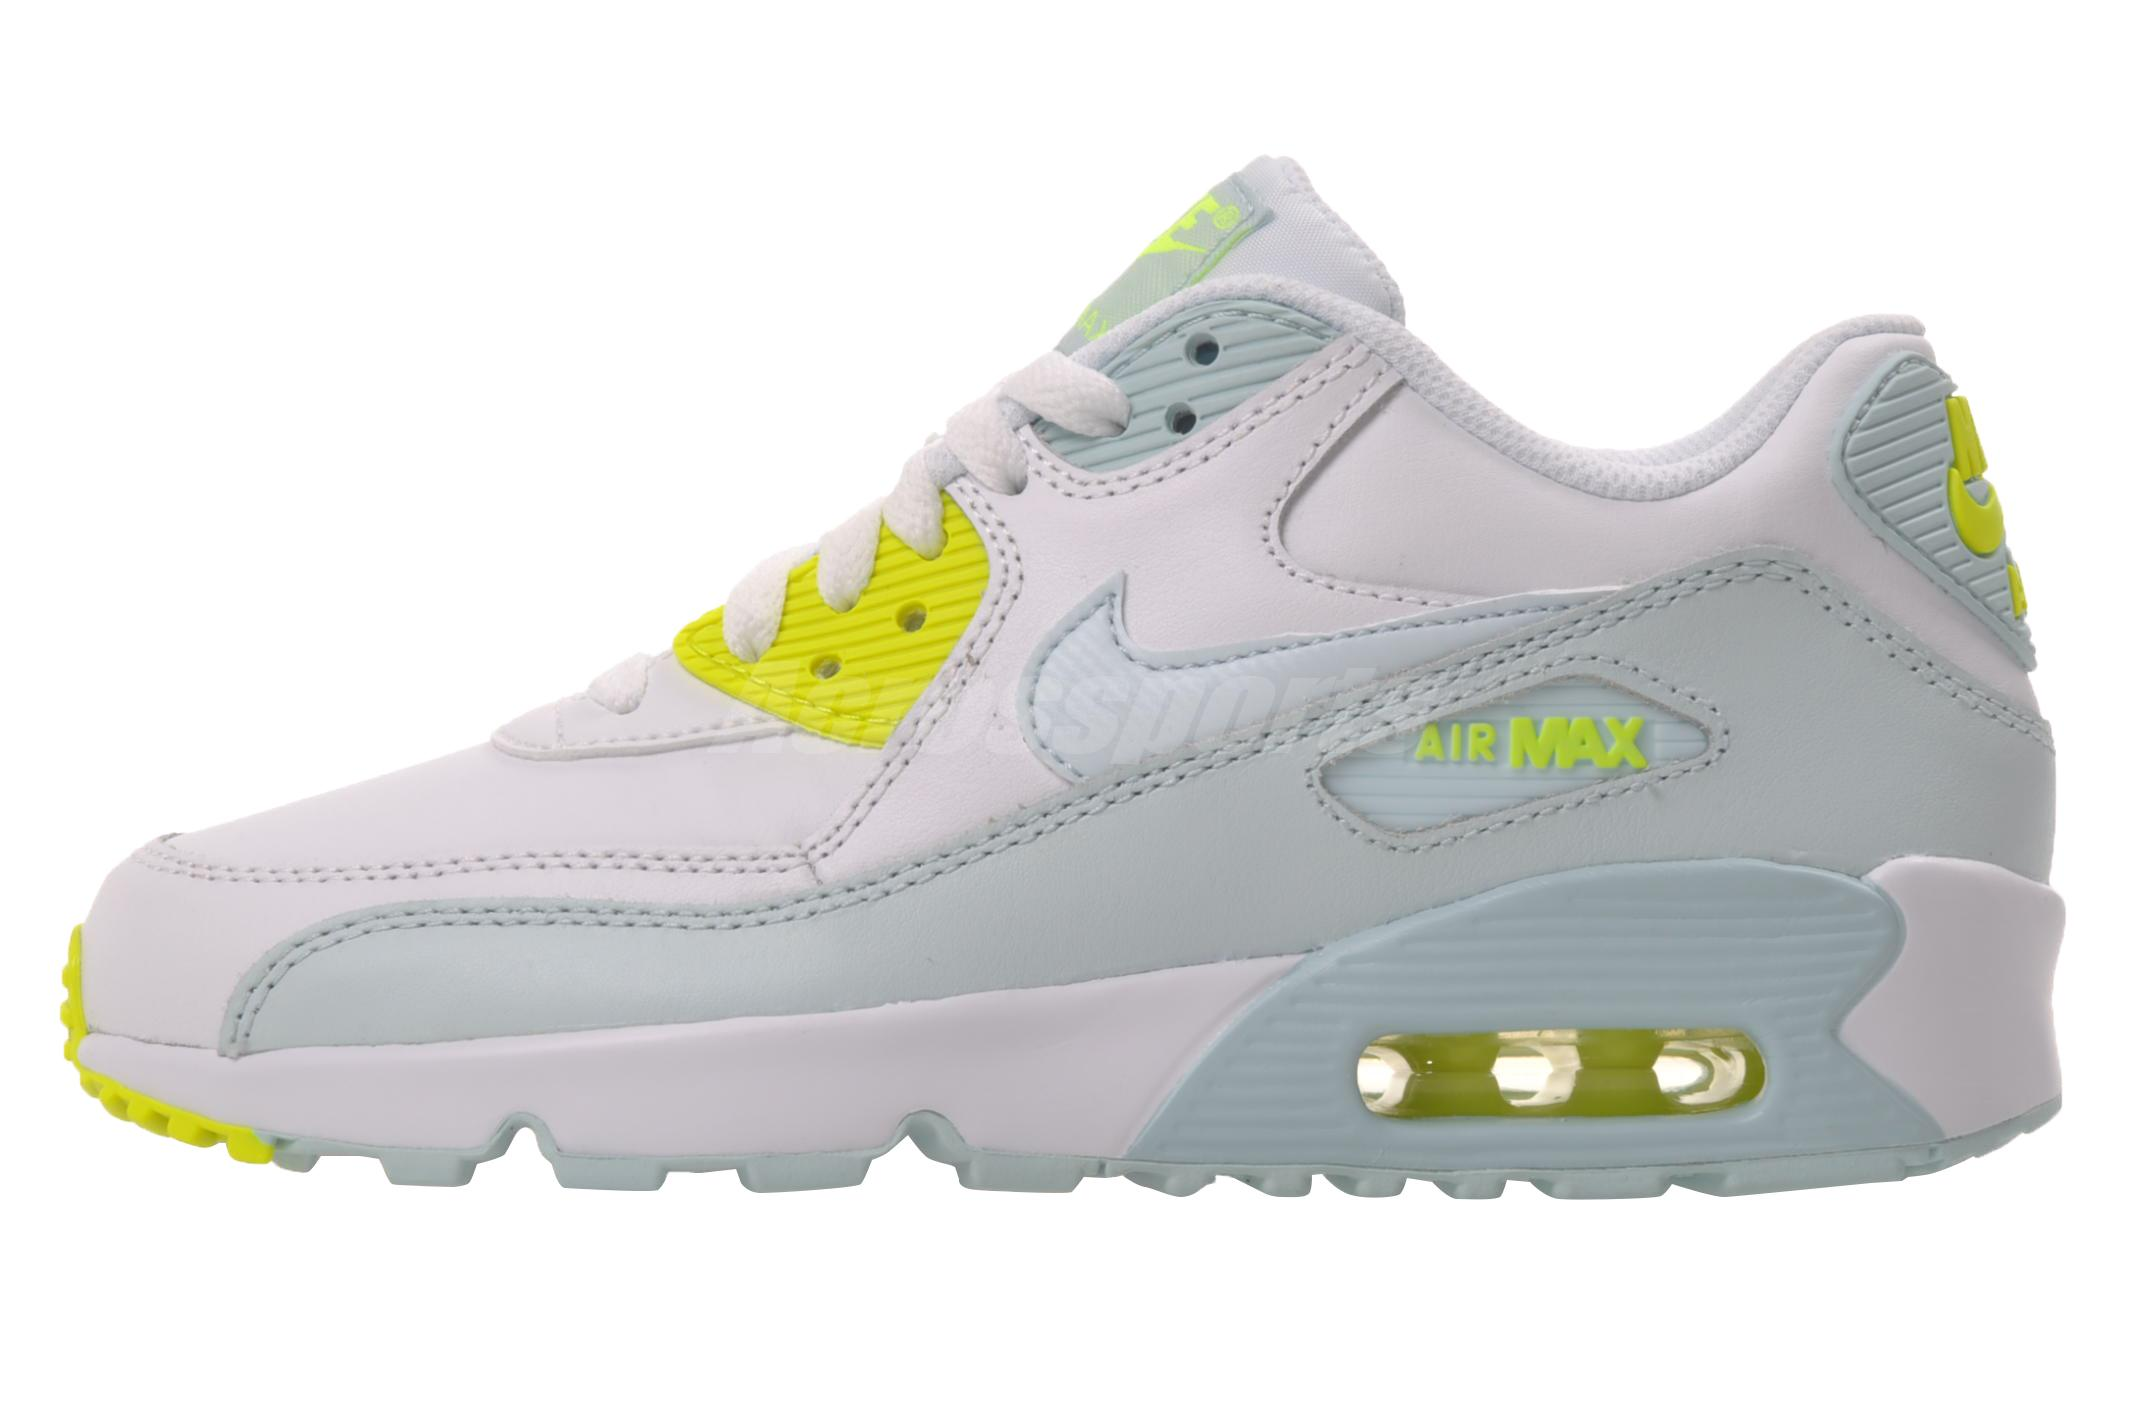 brand new e7316 029d5 ... Womens 655020  Nike Air Max 90 LTR GS Running Kids Youth Shoes White  Blue 833376-100 ...